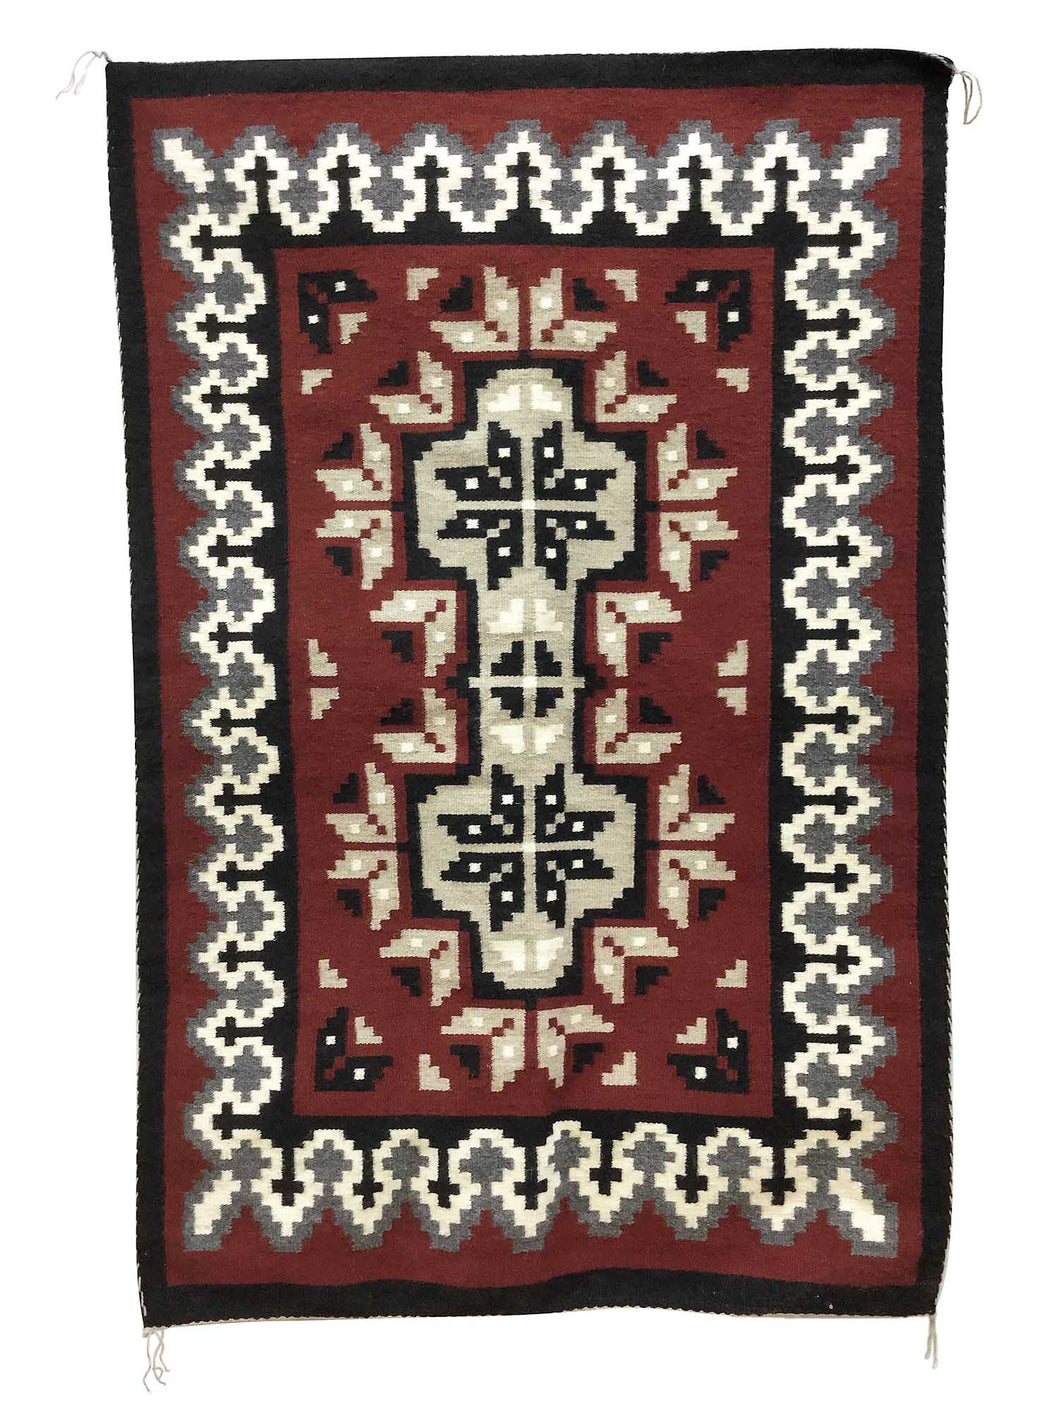 Linda Joe, Ganado Red Rug, Navajo Handwoven, Double Diamond, 60